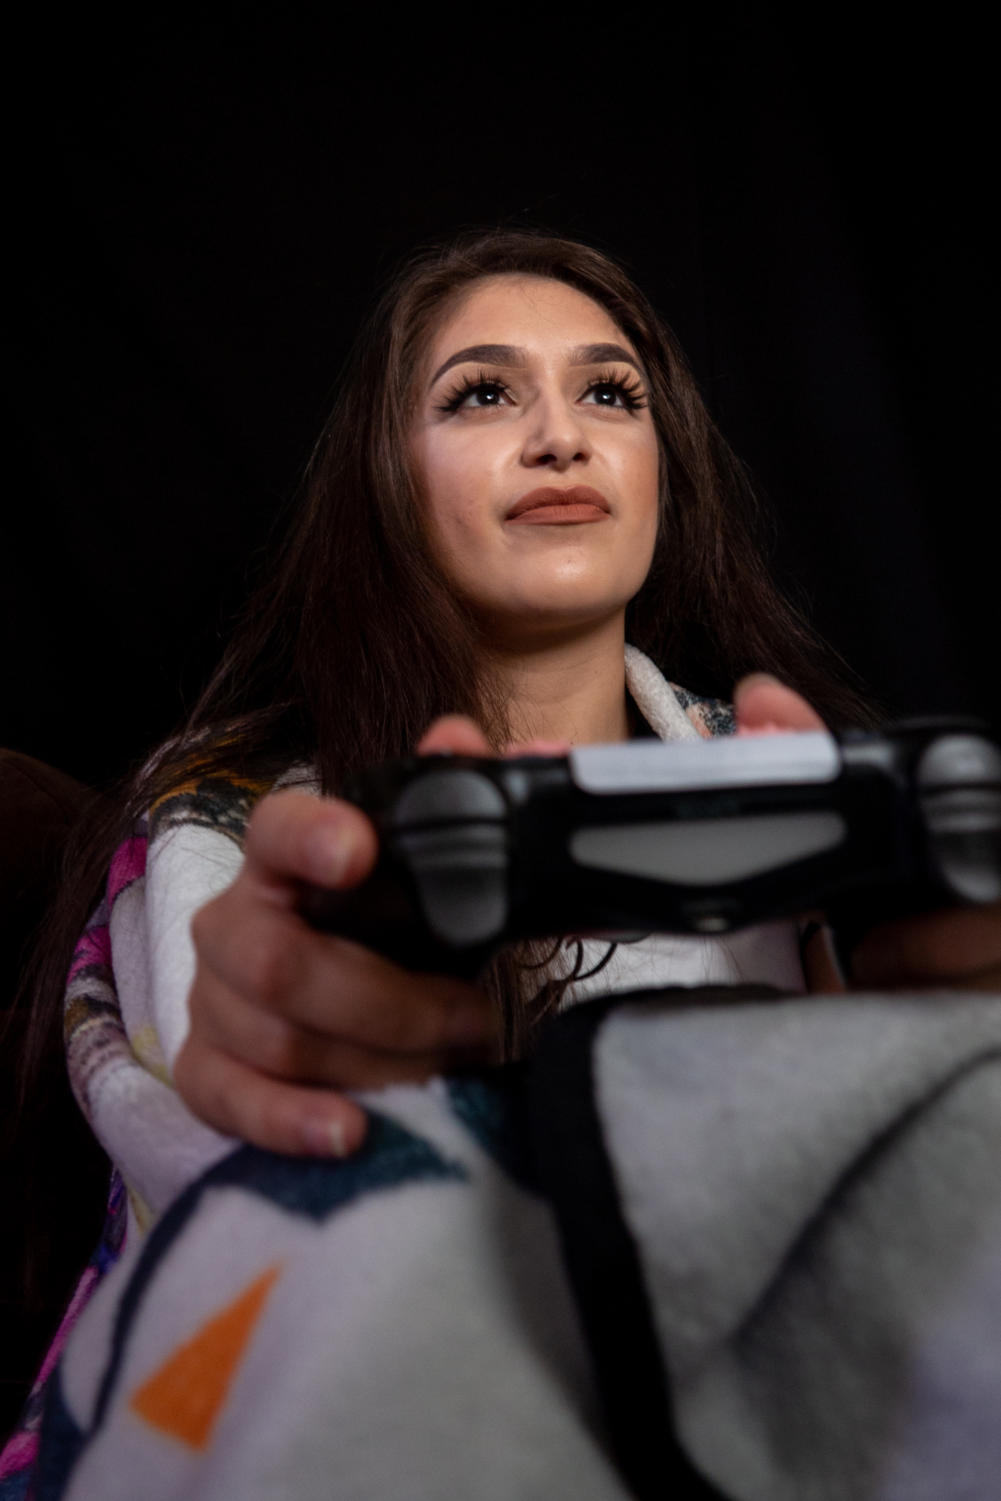 Eileen Rodriguez endures the harassment so common to female gamers.